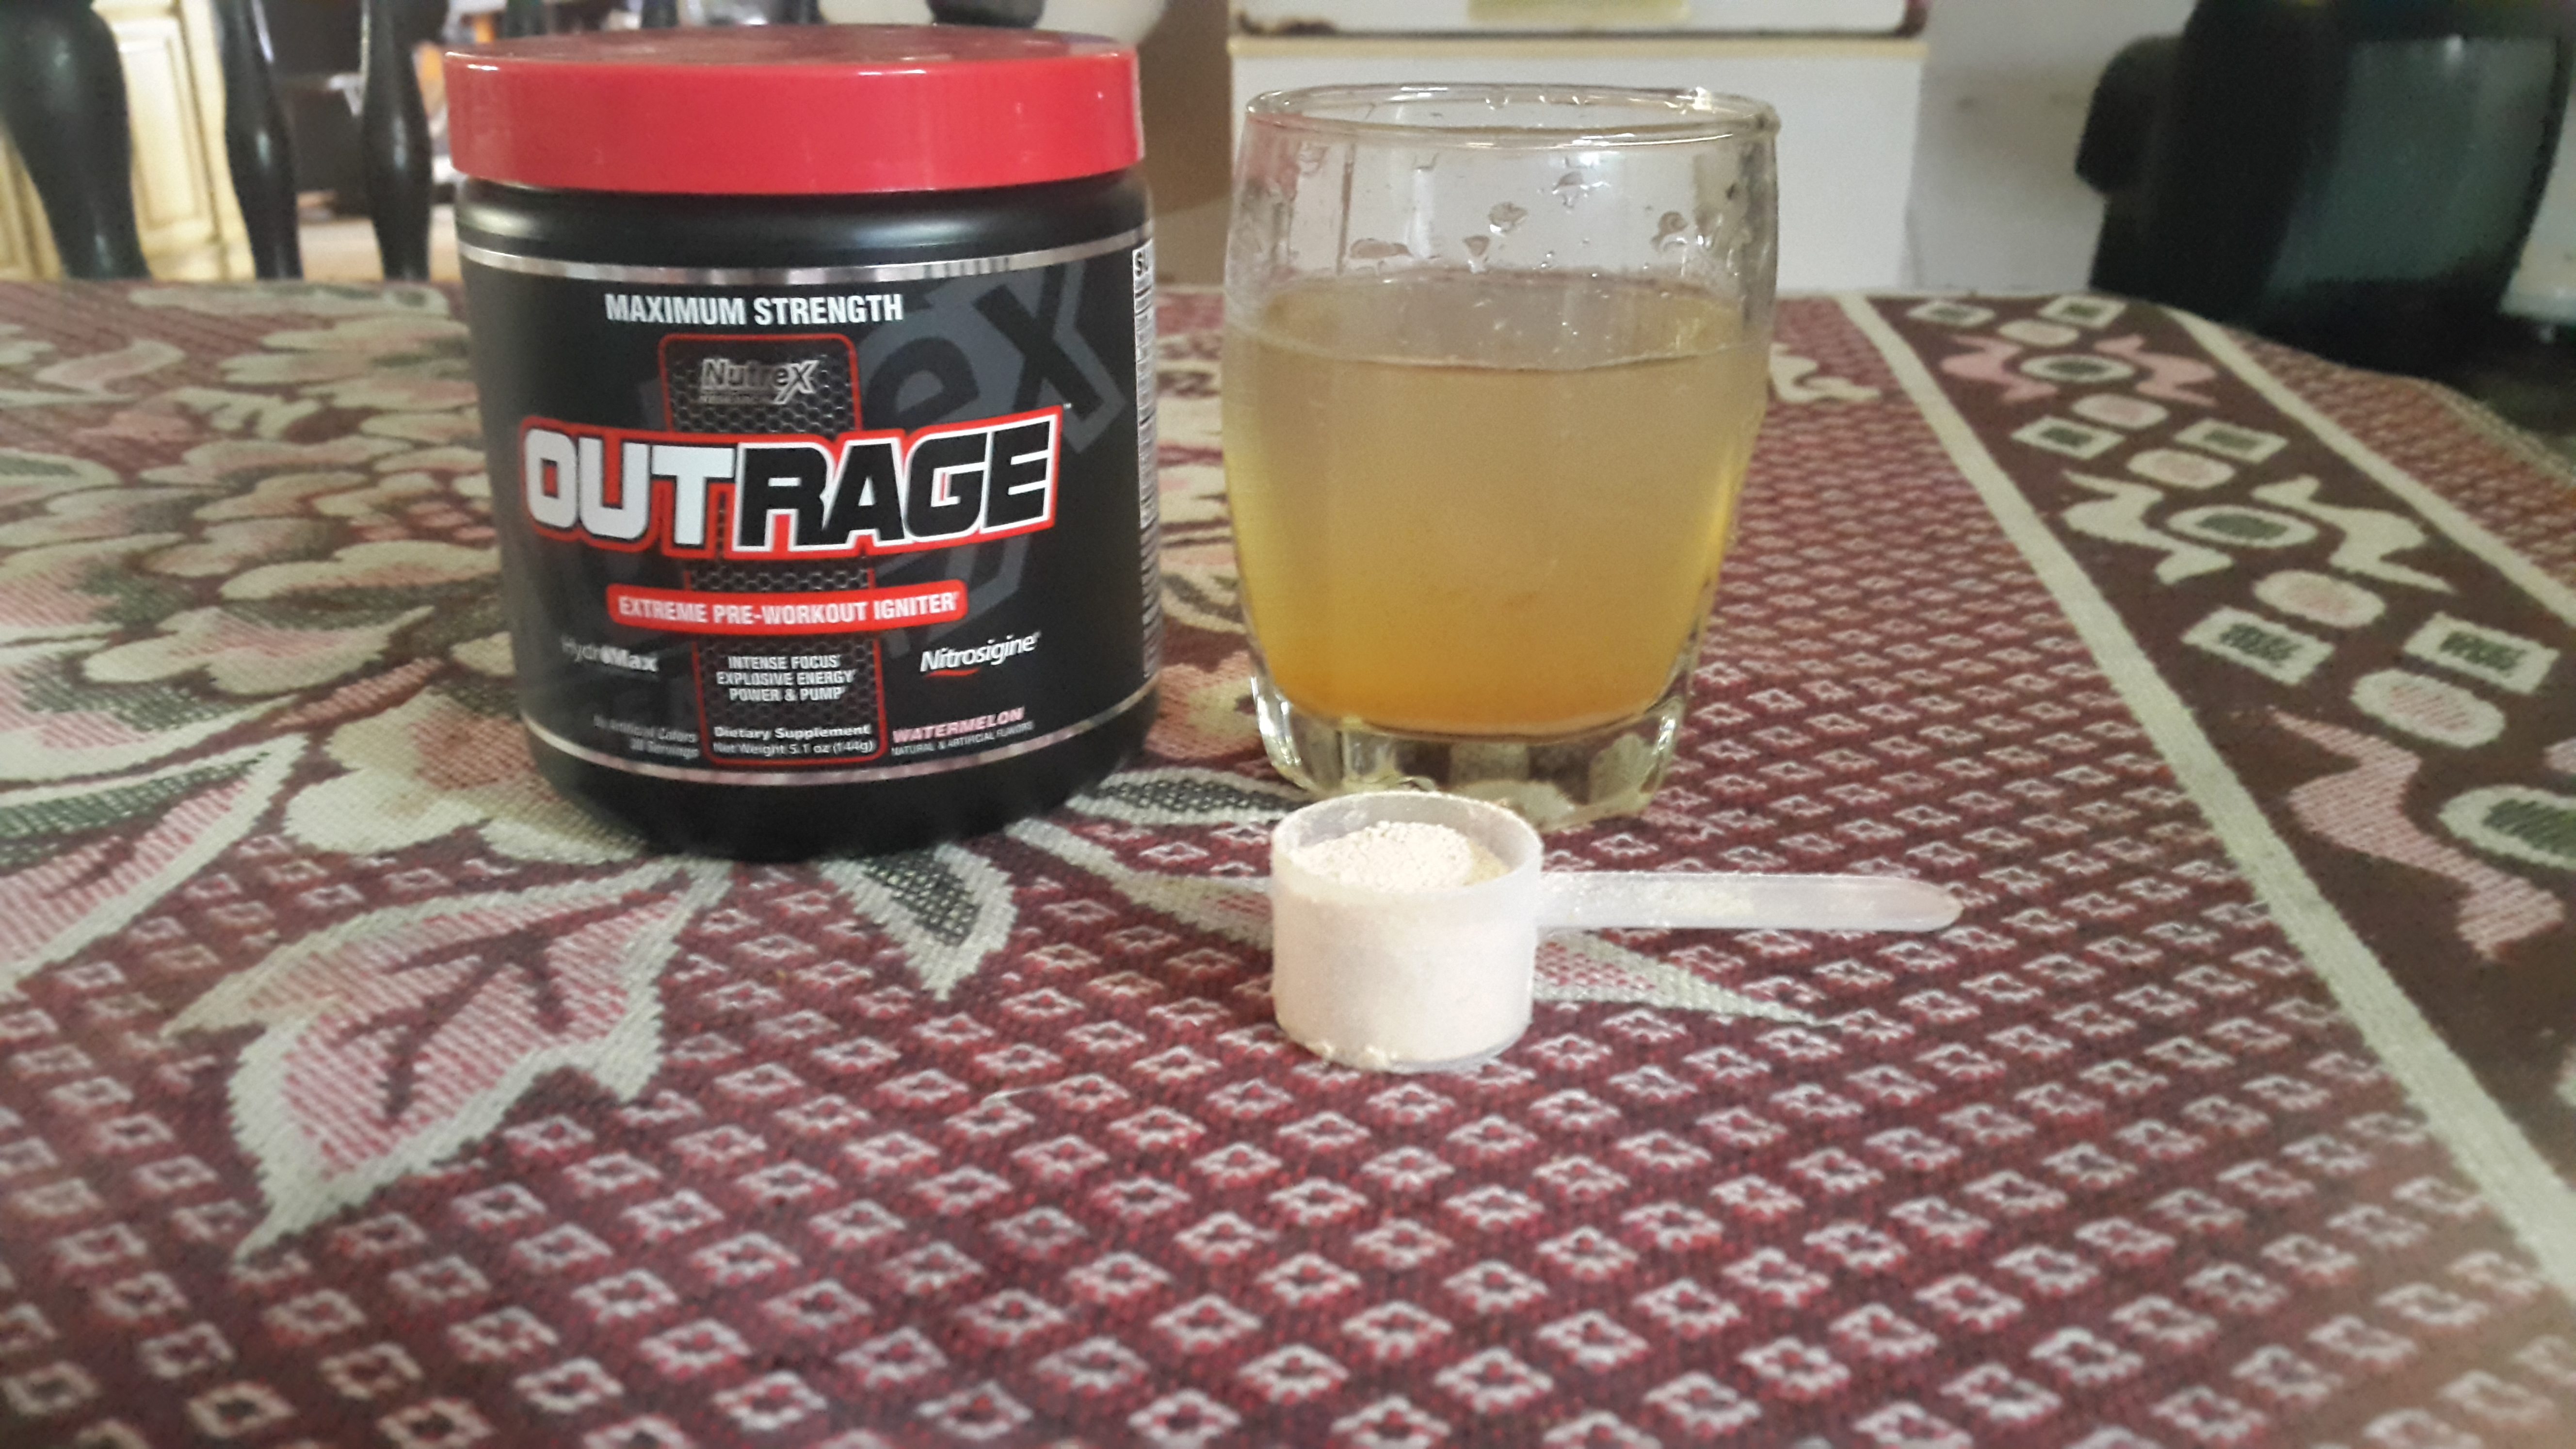 Outrage by Nutrex Research - Lowest Prices Available ...